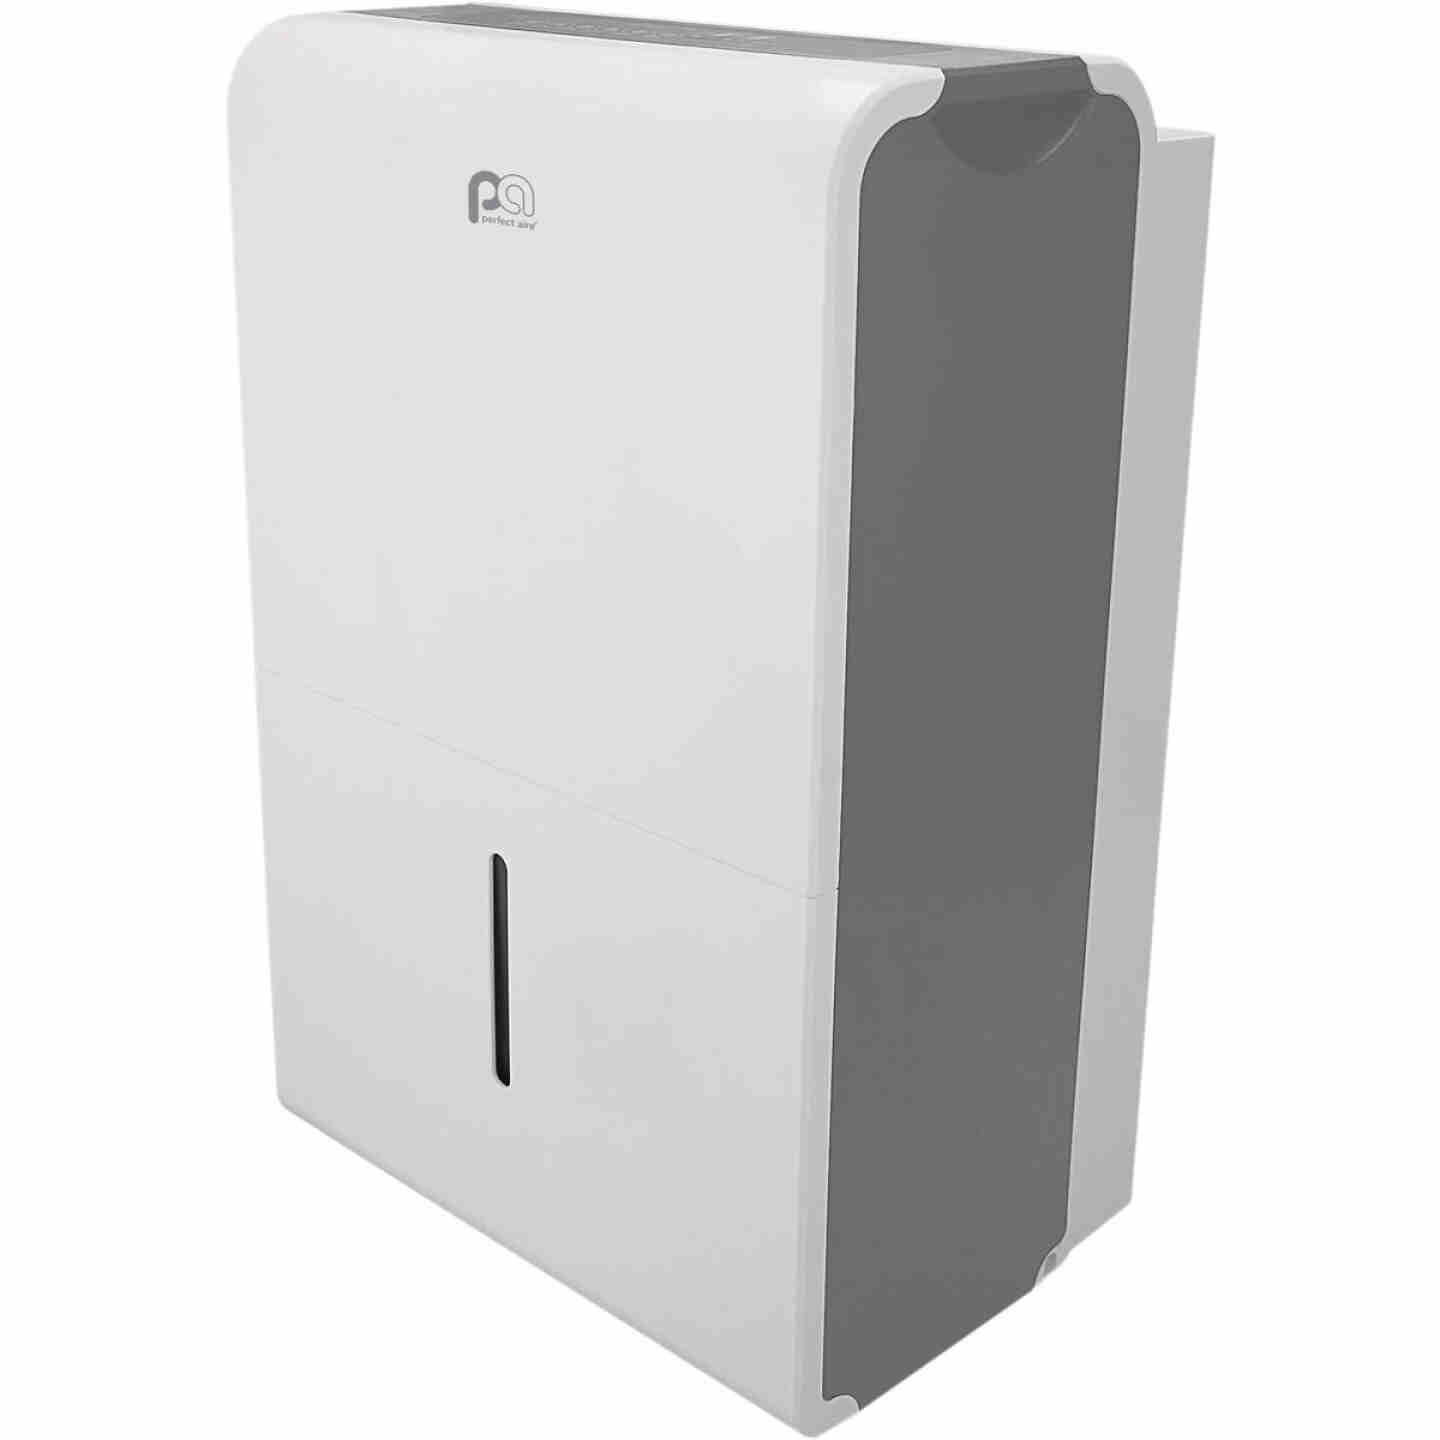 Perfect Aire 50 Pt./Day 645 Sq. Ft. Coverage 2-Speed Flat Panel Dehumidifier Image 1